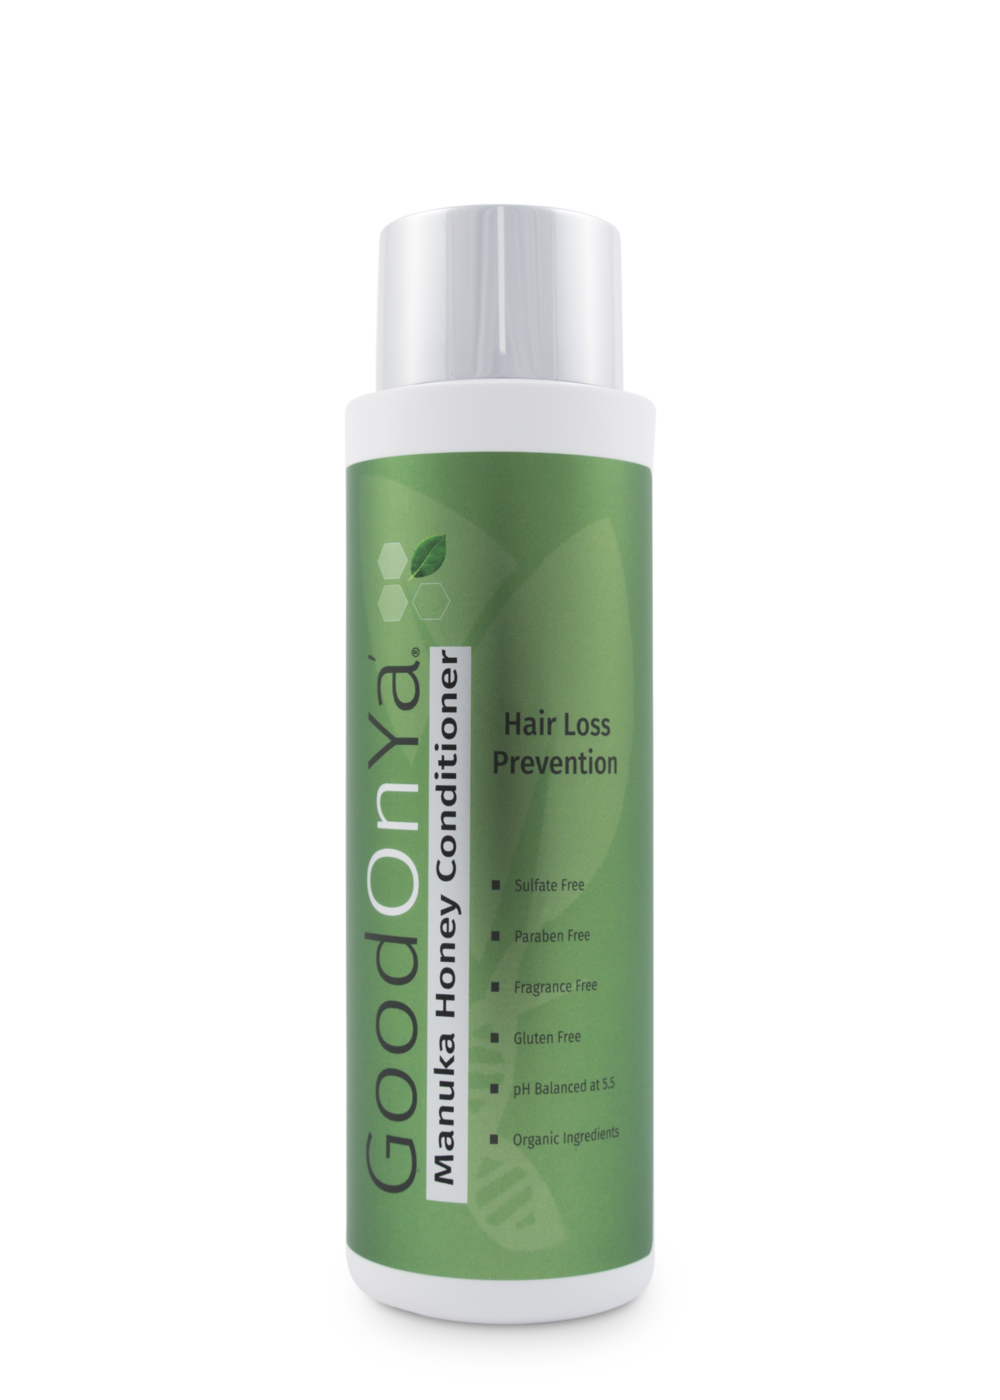 Hair Loss Conditioner In order to effectively curb your hair loss, you need to stop using shampoos and conditioners that contain sulfates, fragrance, and other harmful ingredients. It is these common but damaging substances that clog your scalps' pores, causing rapid hair loss and even making it difficult for new hair to grow. GoodOnYa Hair Loss Prevention Shampoo and Conditioner contain vital and wholesome ingredients like Biotin, Teatree Oil, Willowbark, and more to keep your hair follicles clean and unclogged, thereby promoting healthy hair growth.